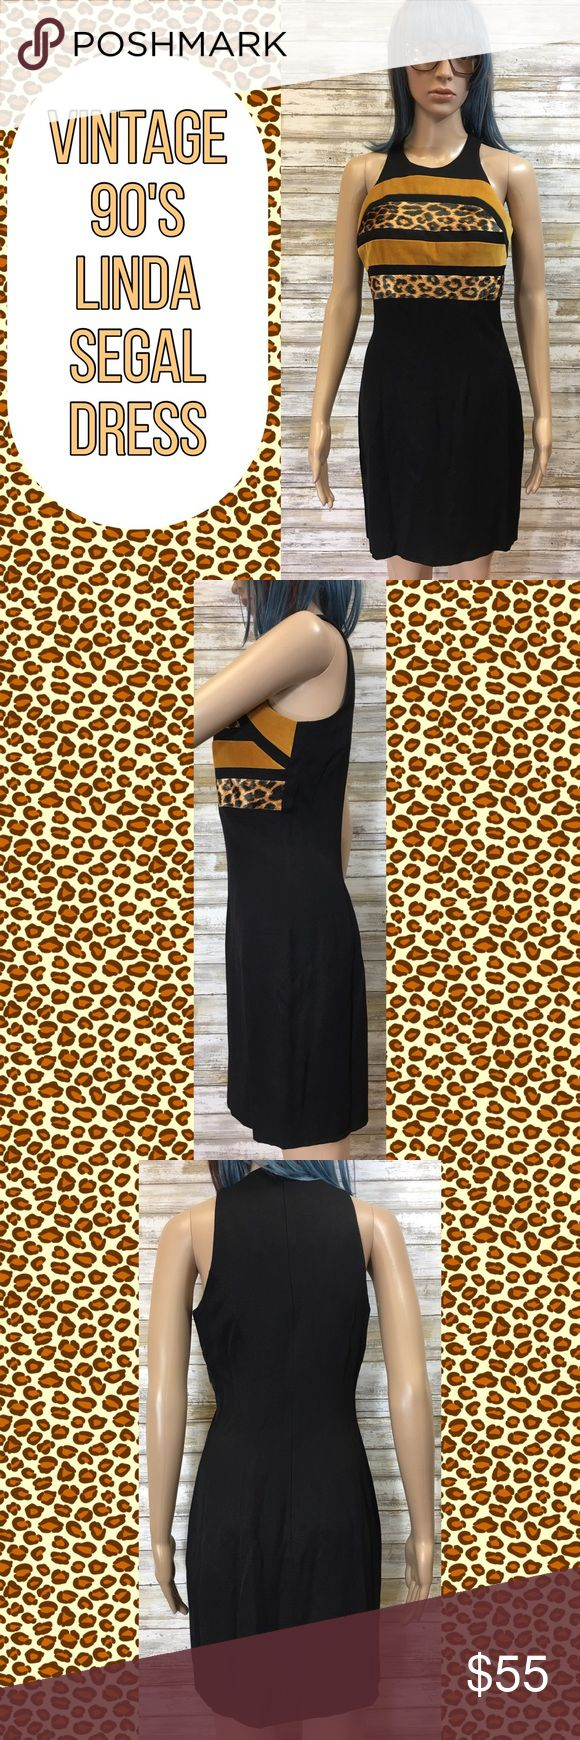 """Vintage Animal Print Linda Segal Sheath Dress Vintage 90's Linda Segal Animal Print Sheath Dress. Black with animal print across the bust. Size 4. Marks on the inside of the straps. Dry clean only. Made in the USA. Material: 30% cotton, 28% polyester, 19% rayon, 15% acetate and 5% lycra. Measurements (flat): armpit to armpit: 16.75""""; waist: 14.25""""; bottom hem: 17.75""""; length: 30.5"""". Vintage Dresses"""